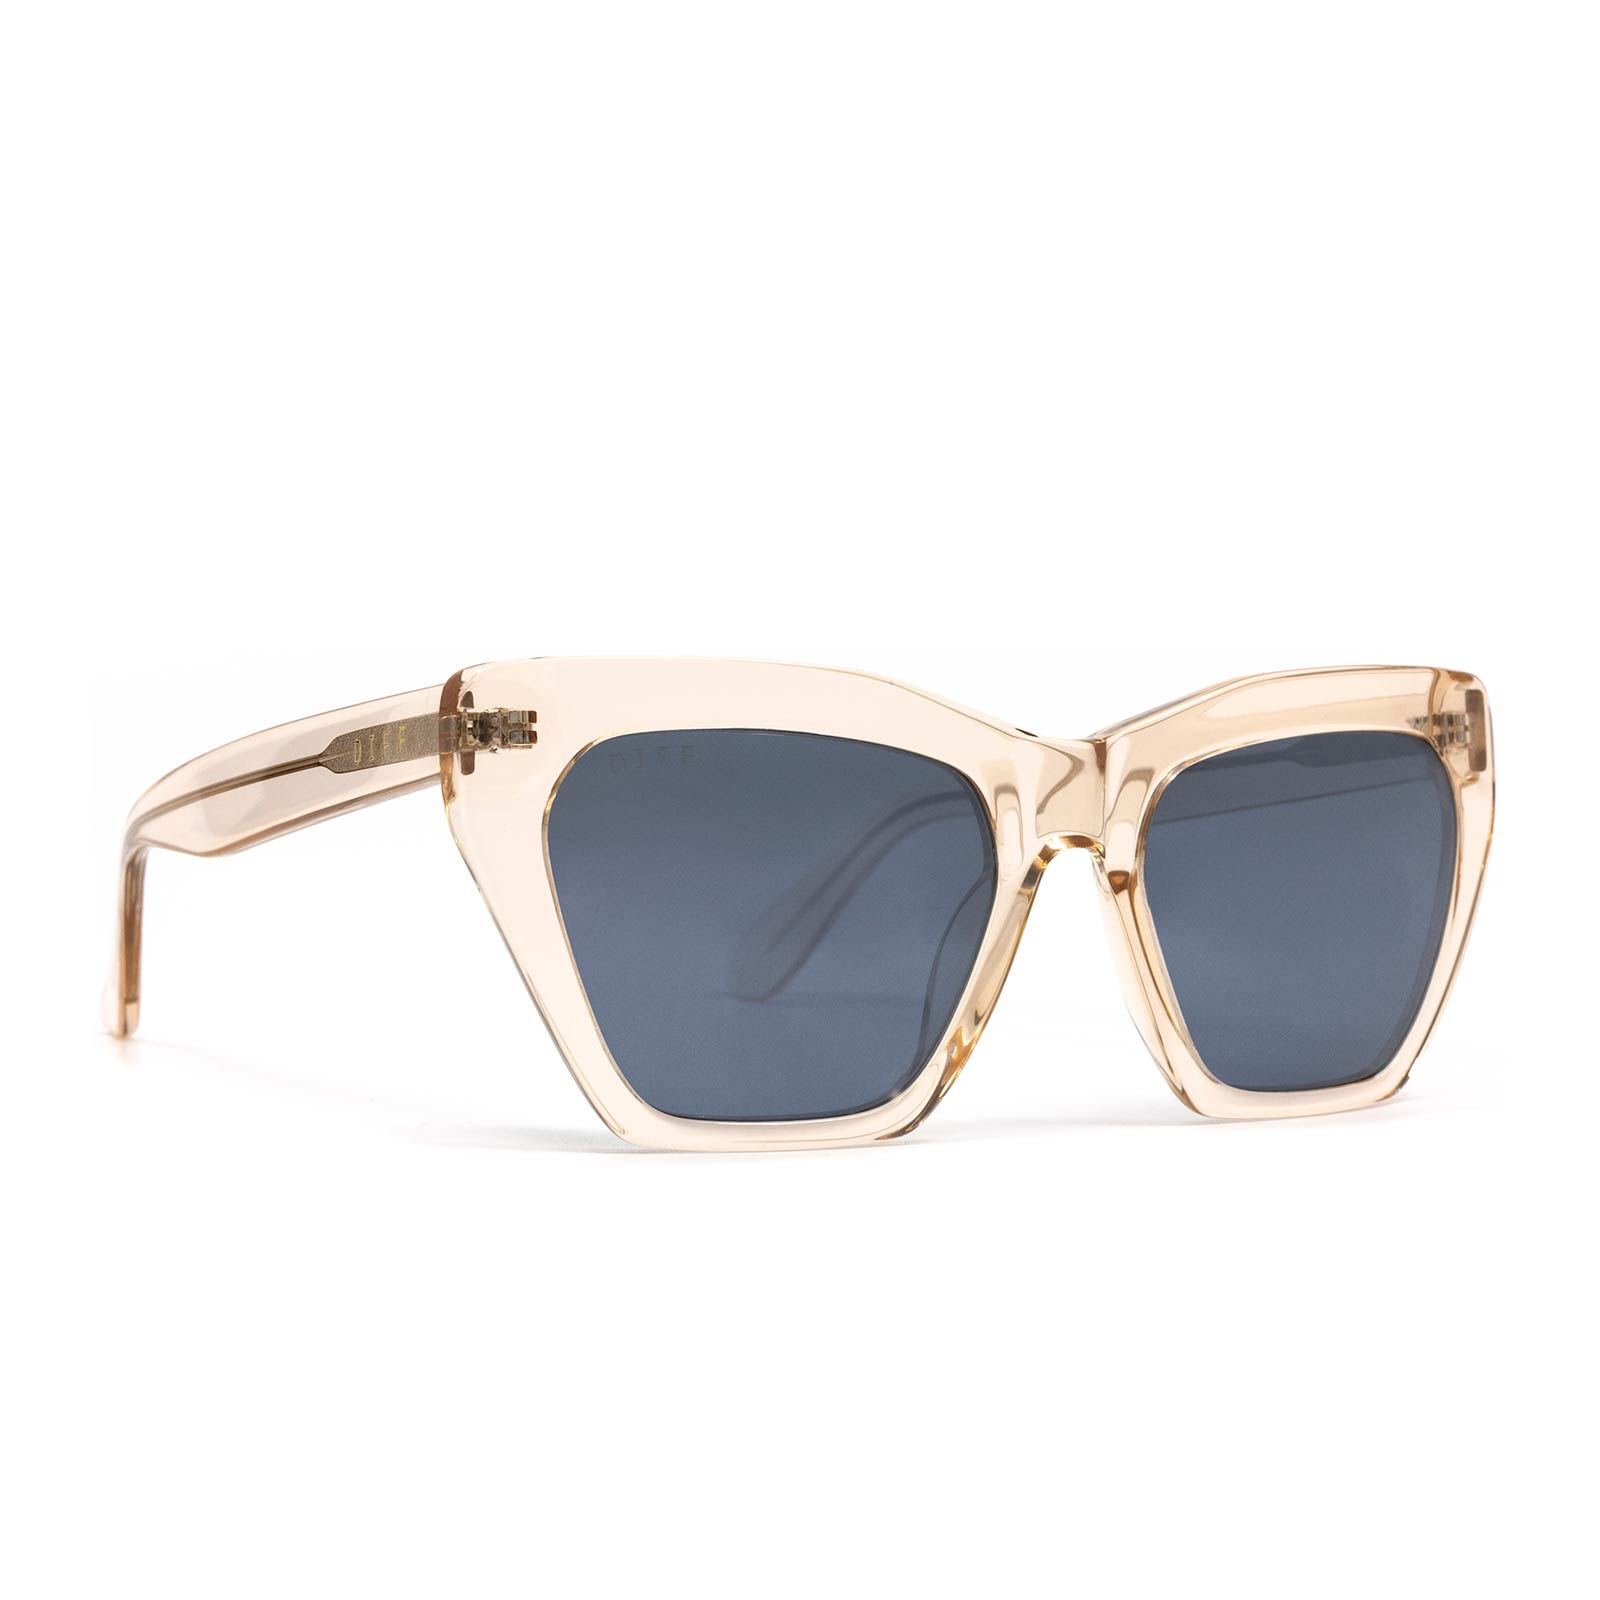 Wren sunglasses with blush crystal frame and grey mirror lens- angle view